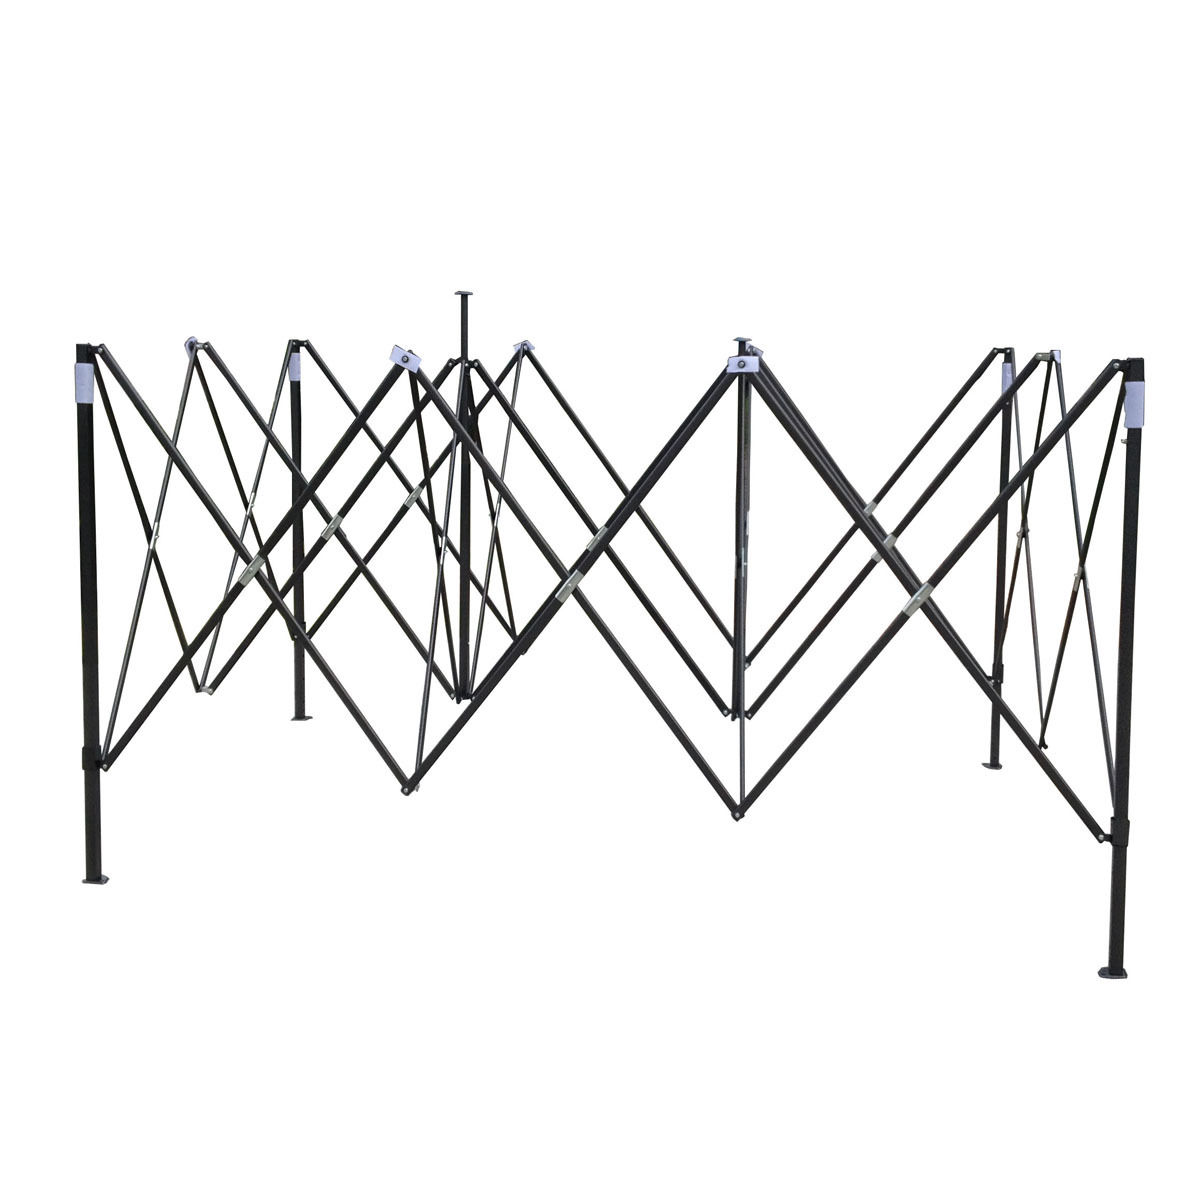 10 X 15 Commercial Pop Up Canopy Tent Frame